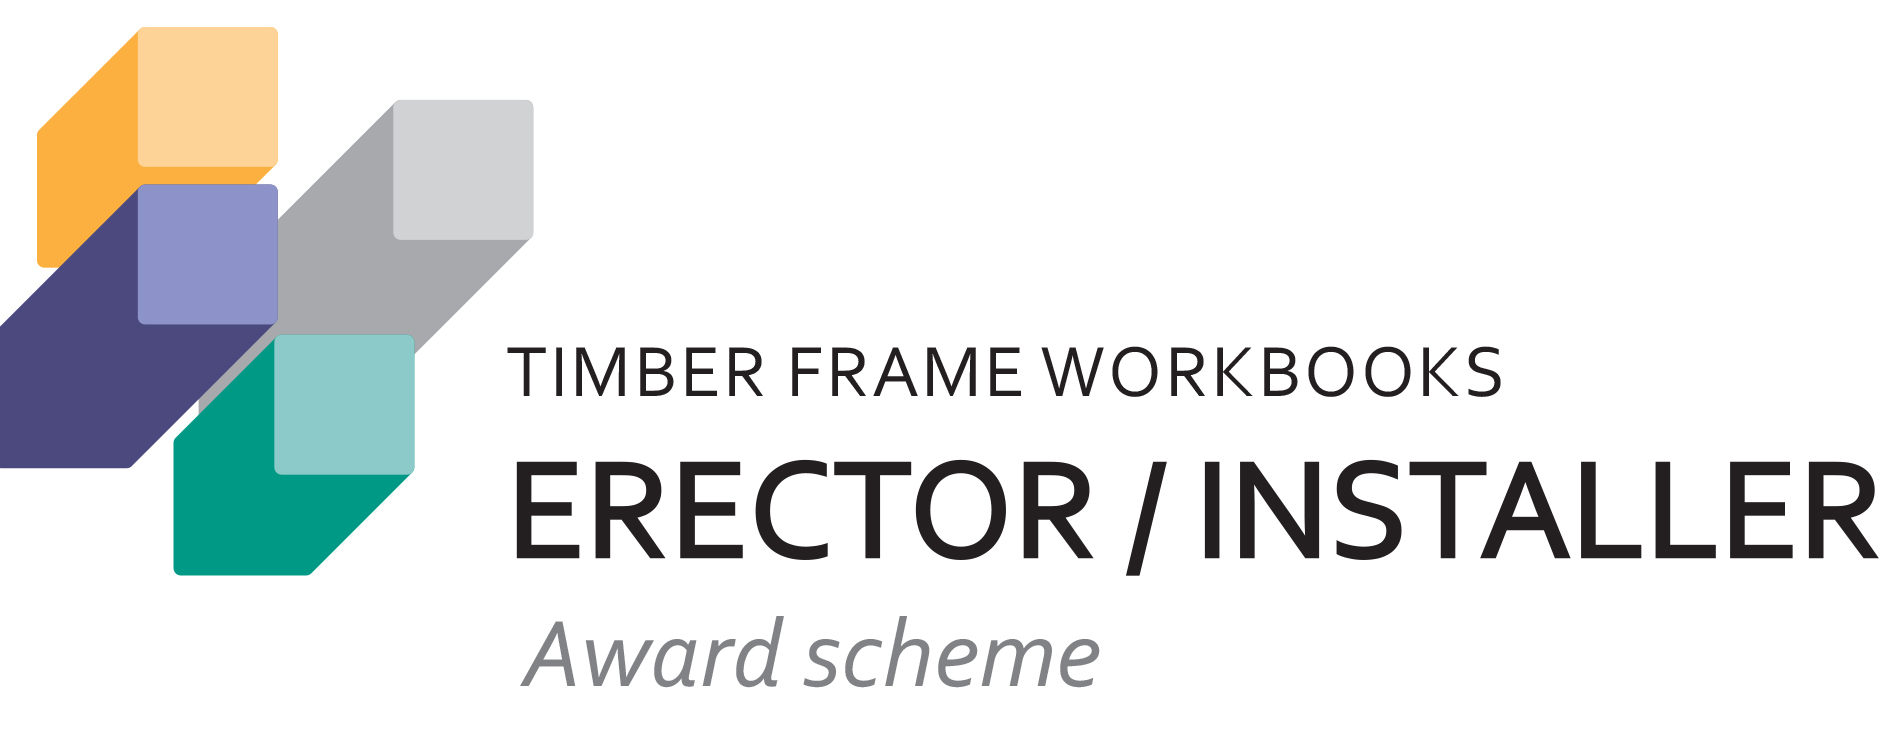 STA_Timber_Frame_Workbooks_Erector_Installer_logo